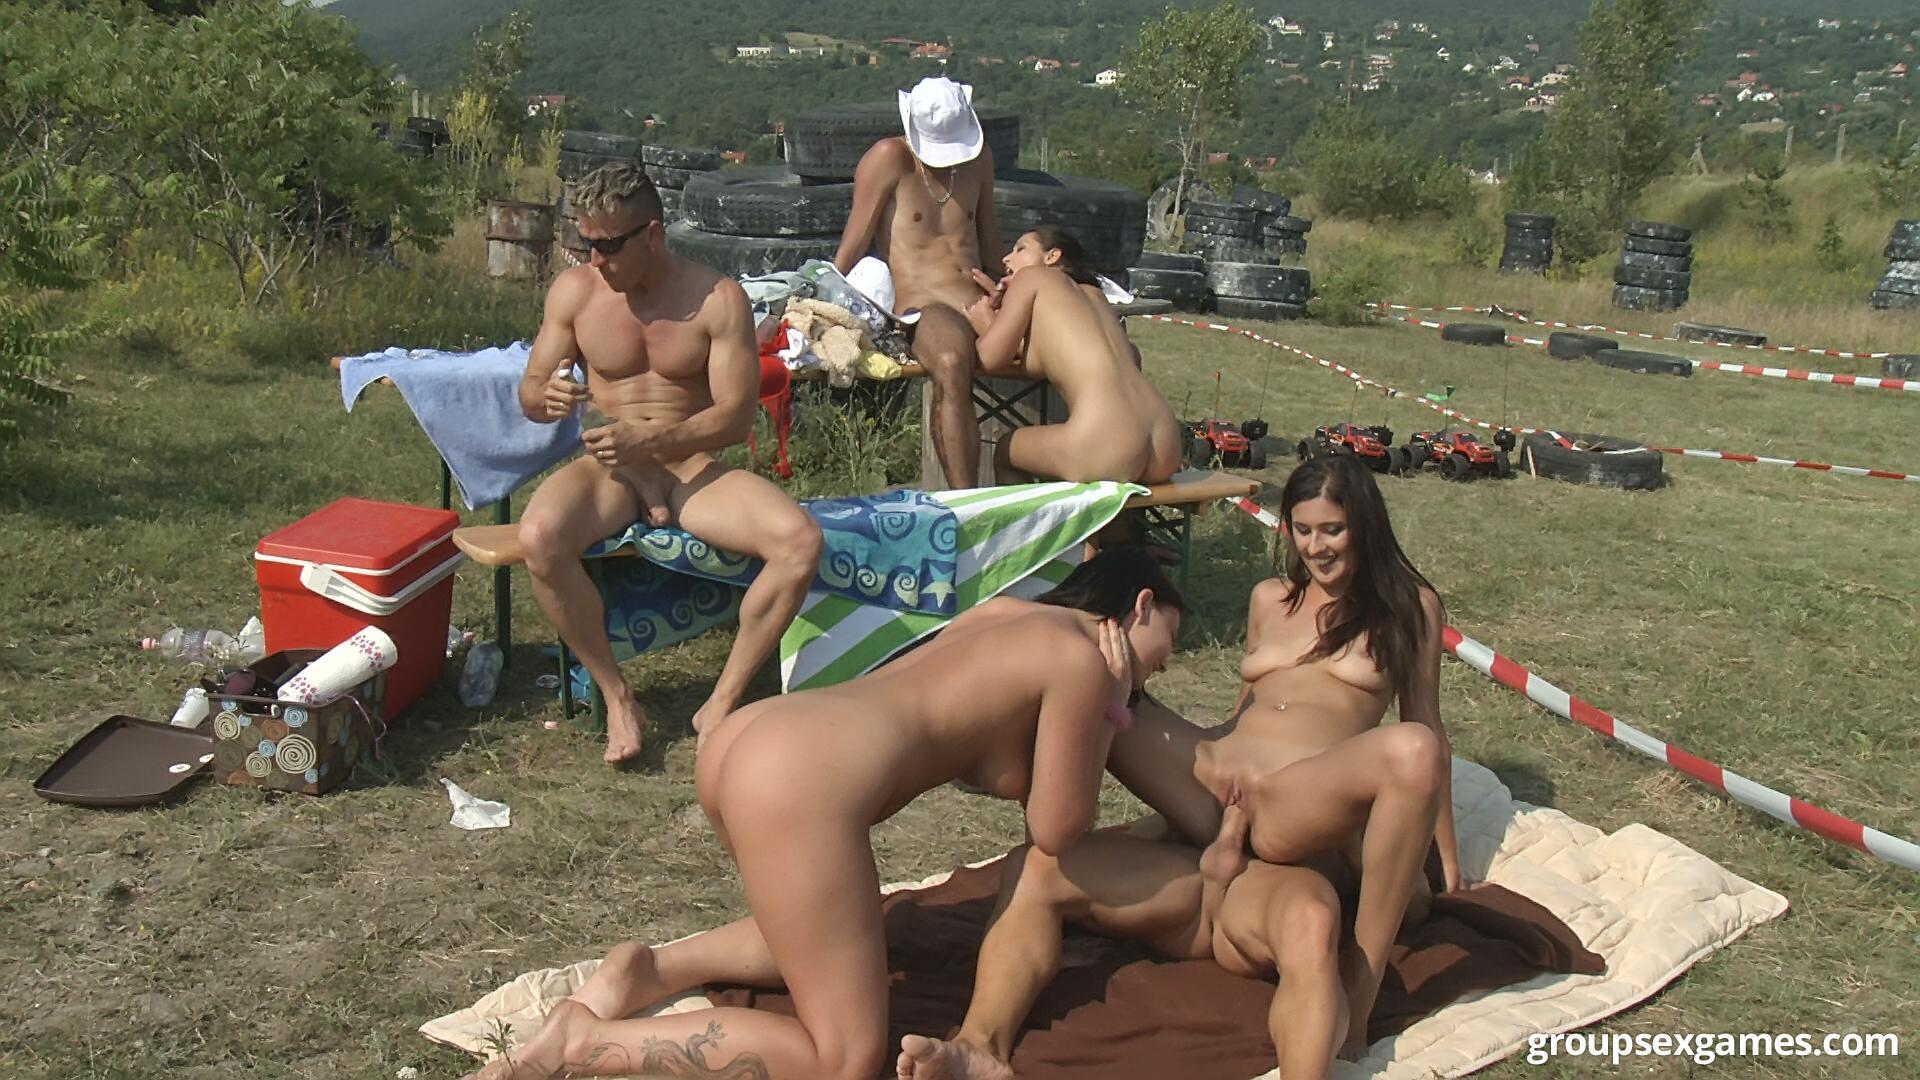 Very Amateur orgies real vids everything, and